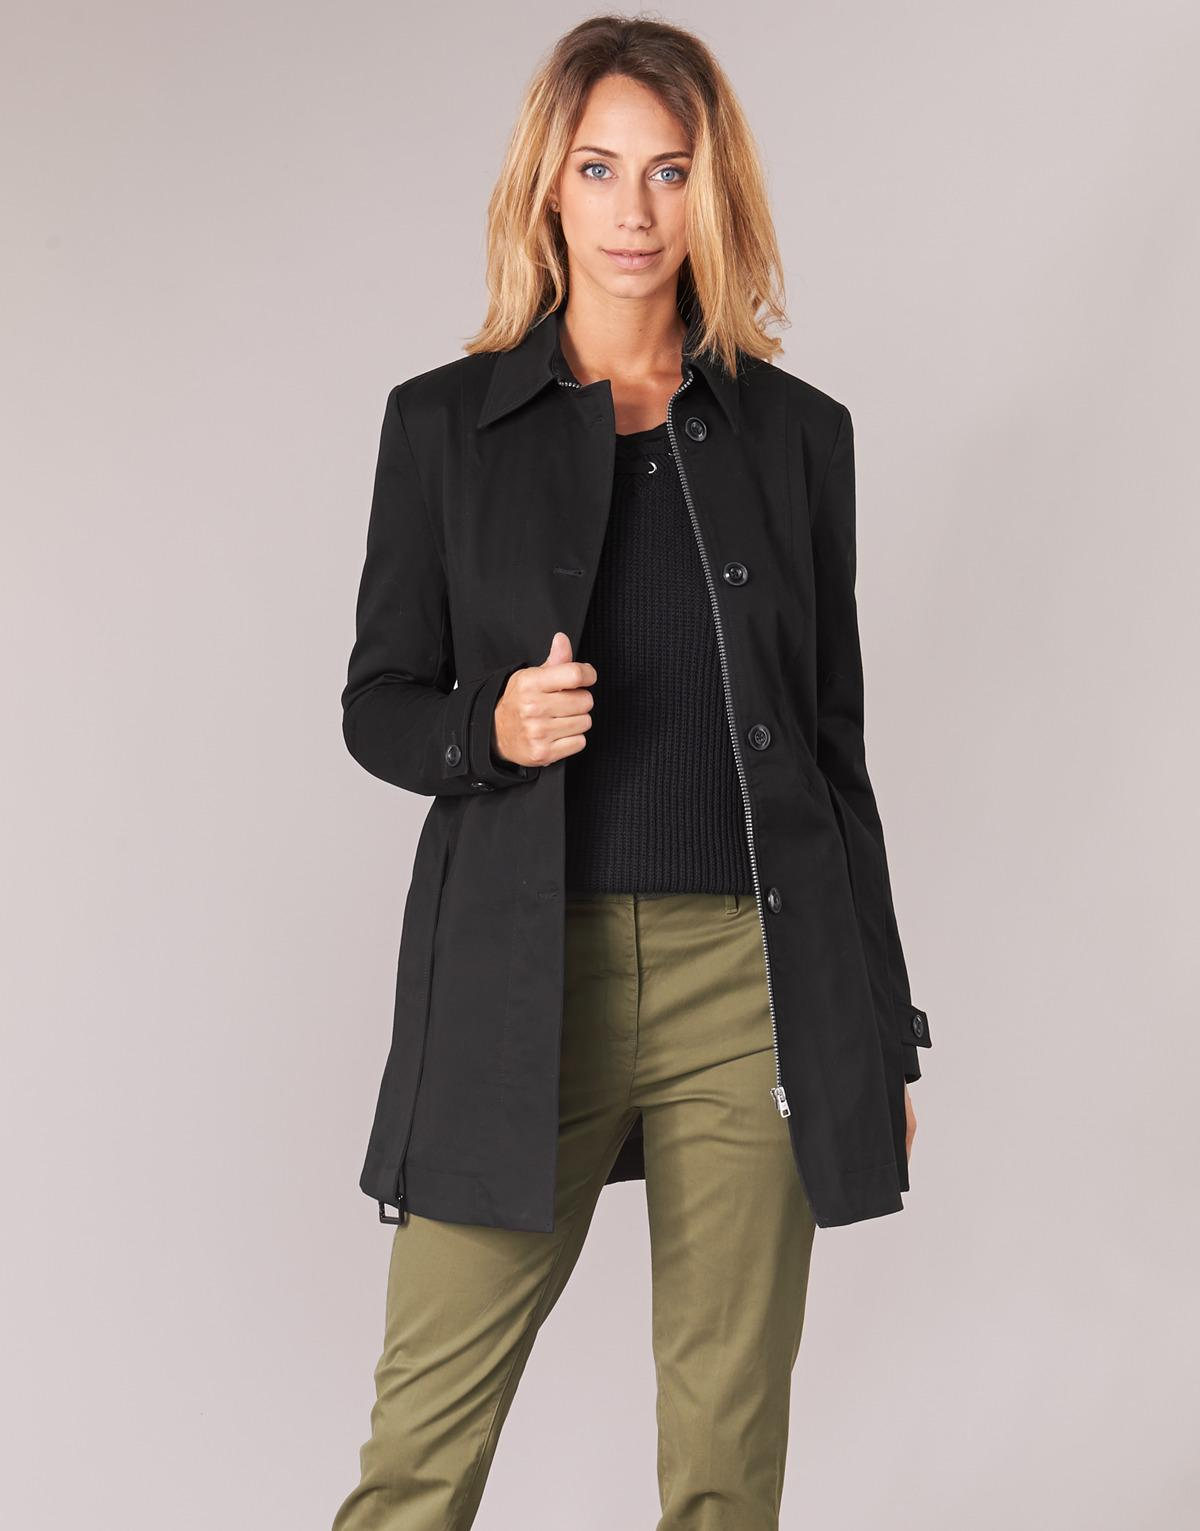 5d80a610debd4c g-star-raw-black-Minor-Slim-Trench-Womens-Trench-Coat-In-Black.jpeg